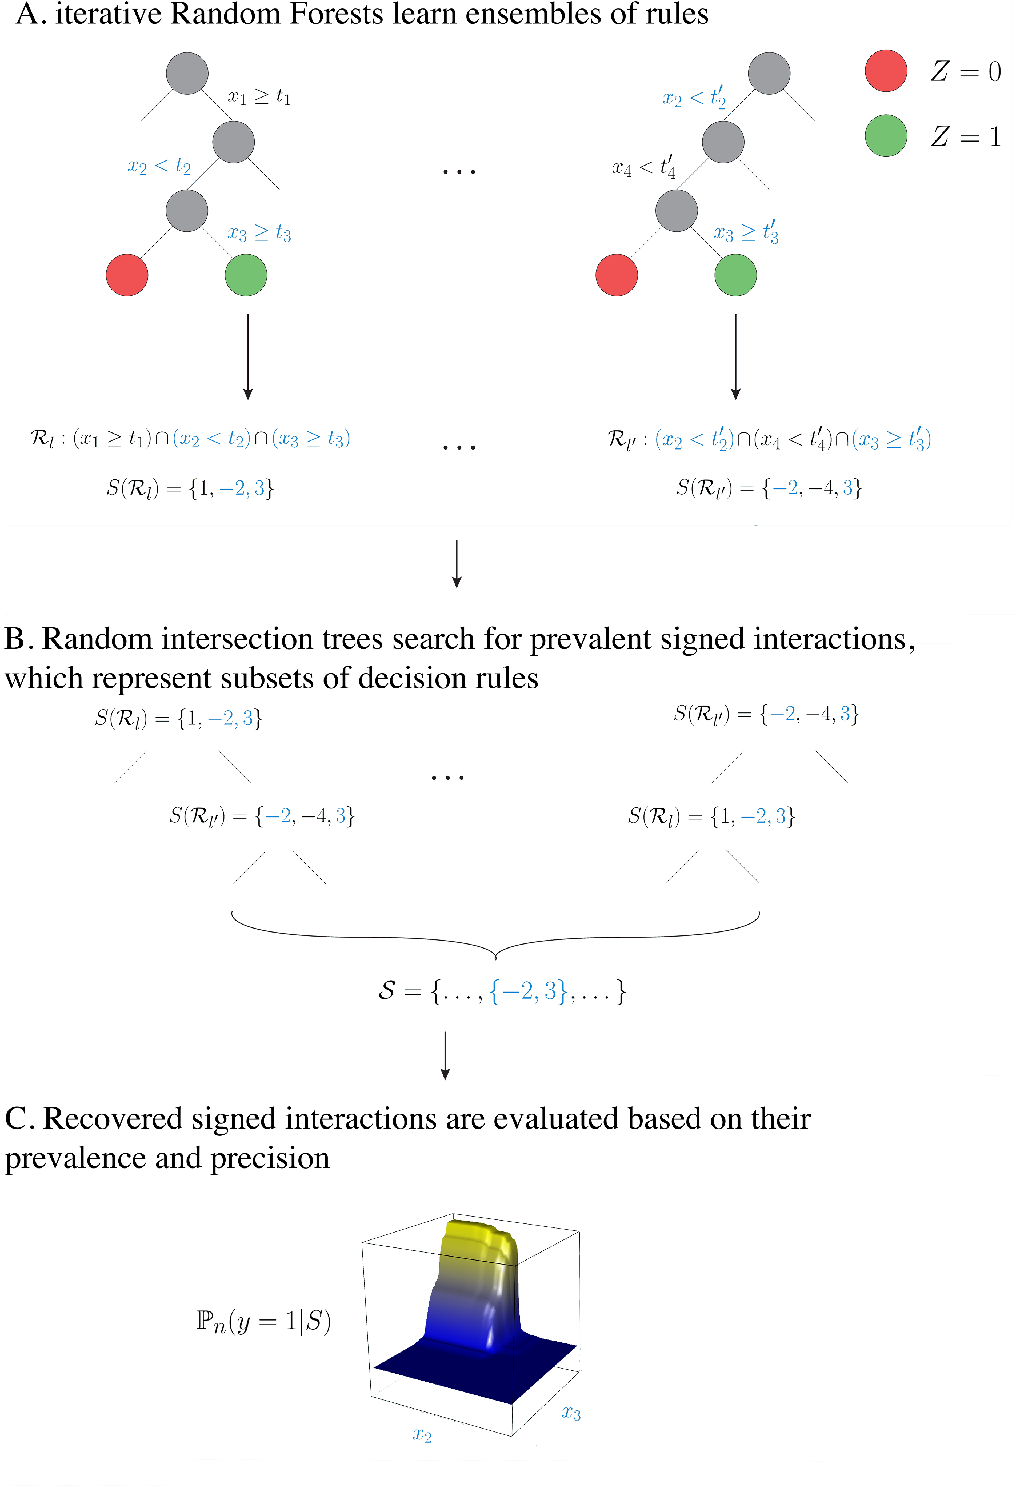 Figure 3 for Refining interaction search through signed iterative Random Forests